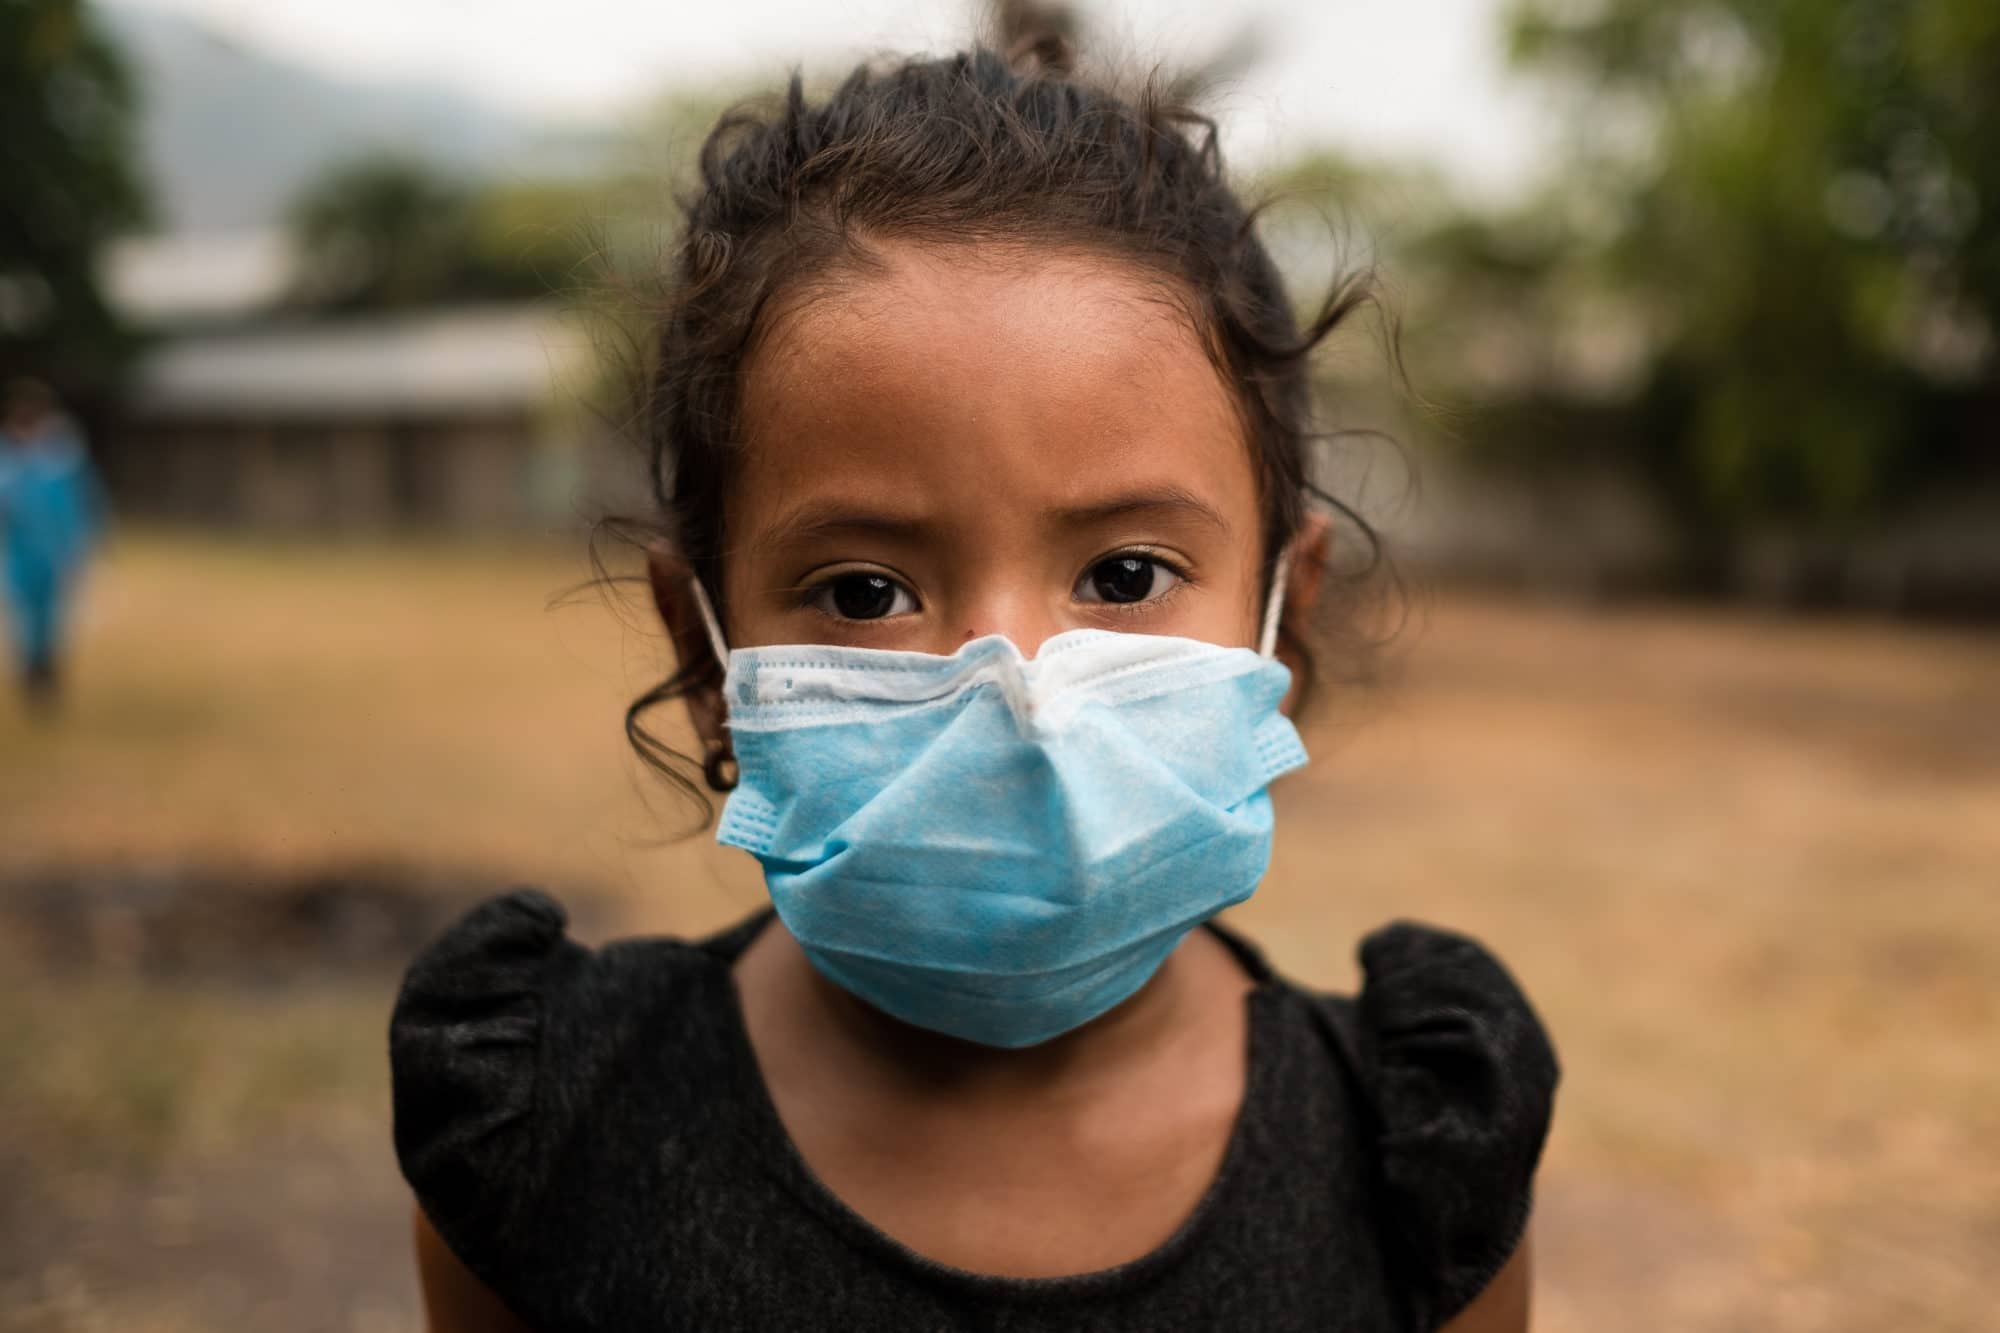 Increasing resilience to diseases and epidemics: A CARE LEARNING REVIEW